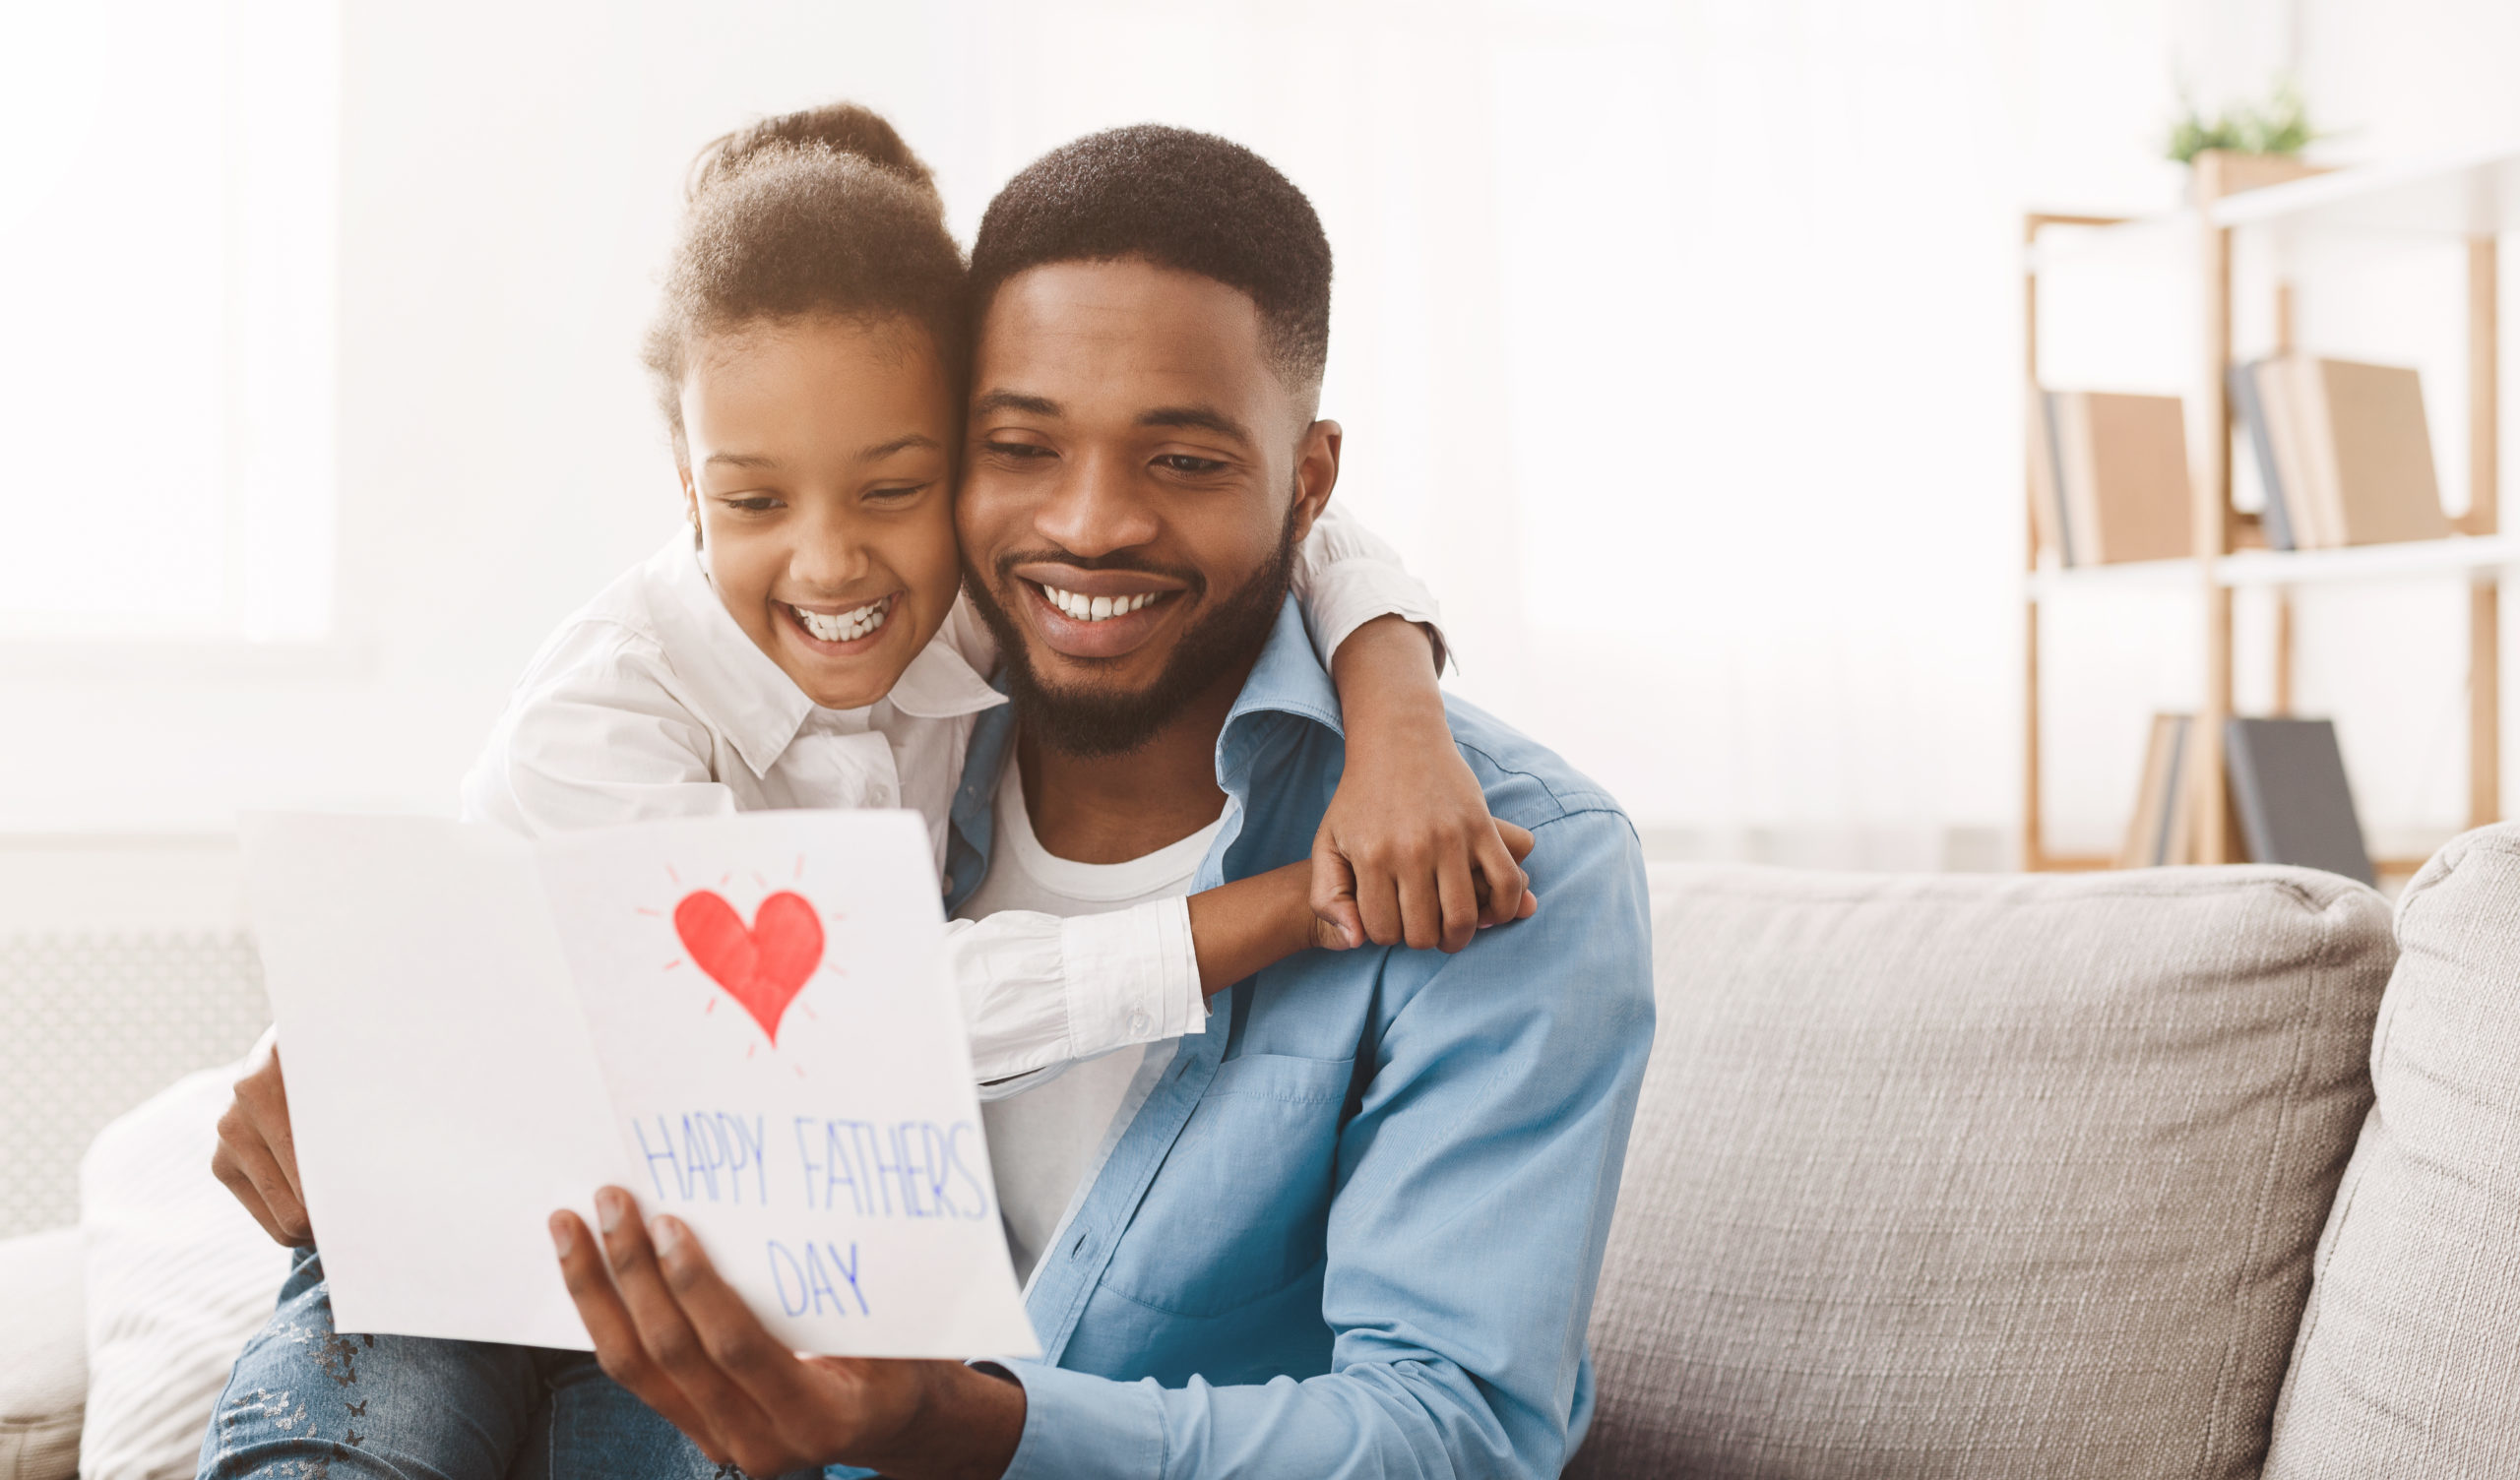 Daugher giving father a card for Father's Day